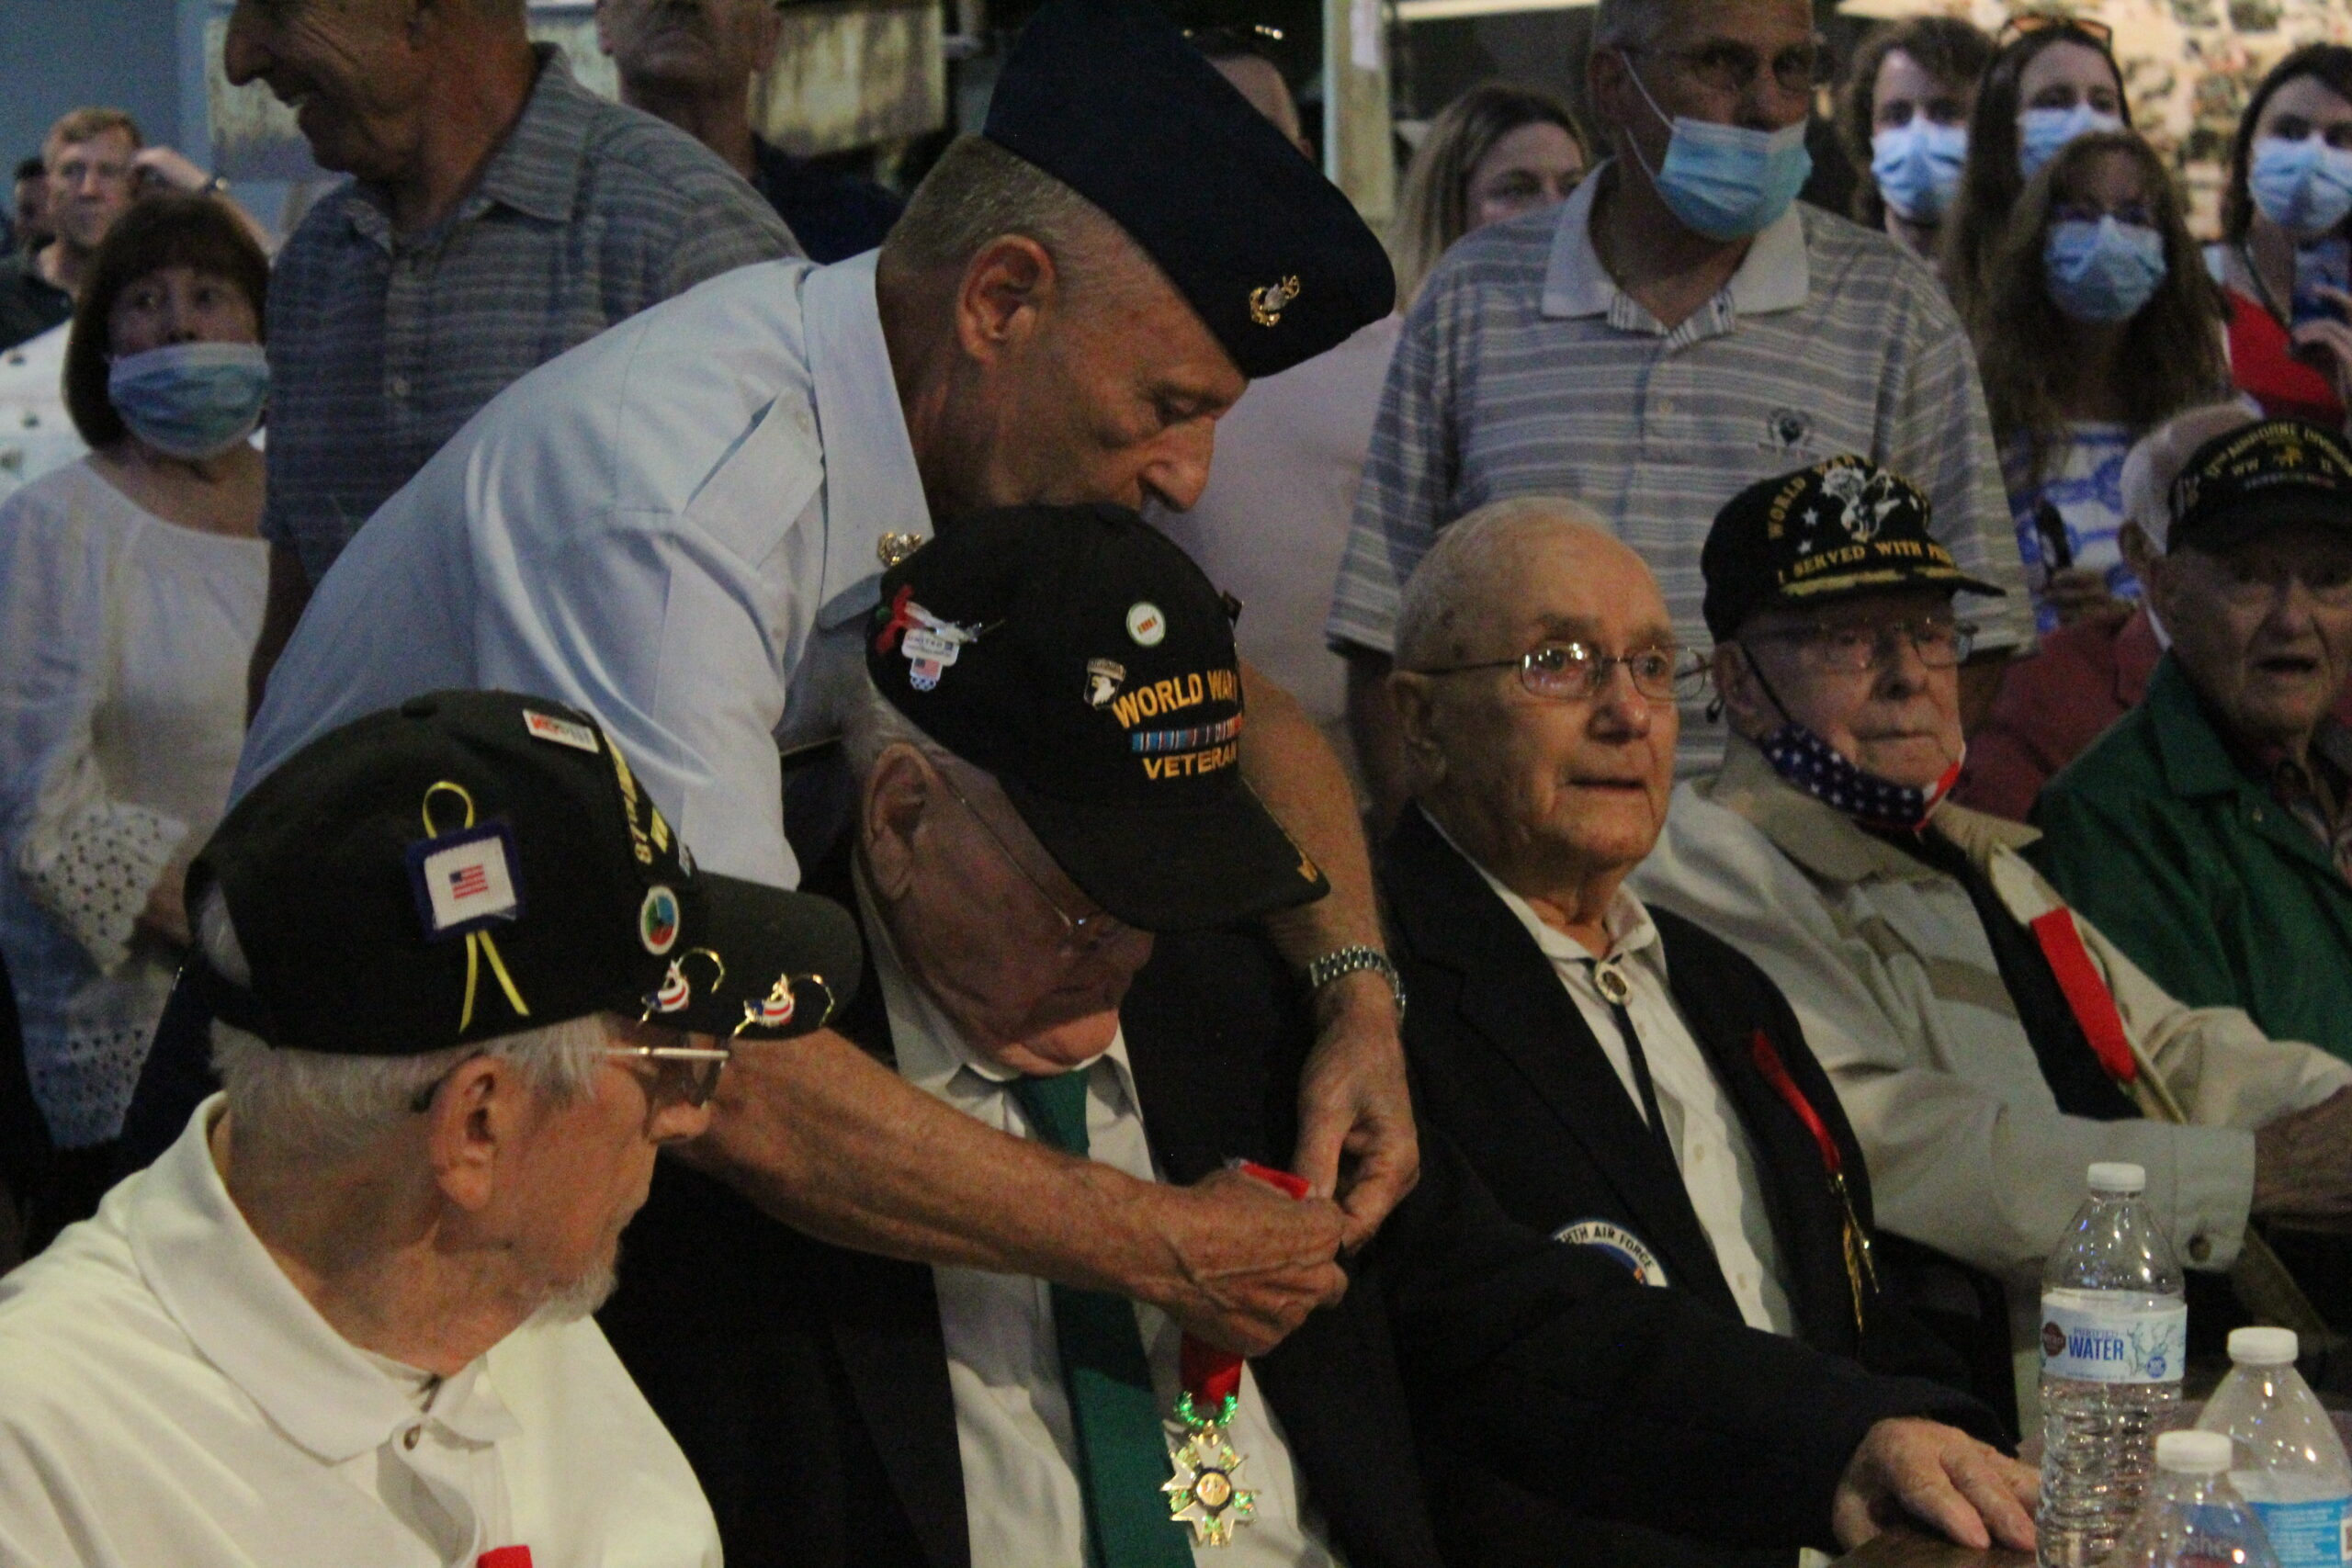 A veteran receives the French Legion of Honor.